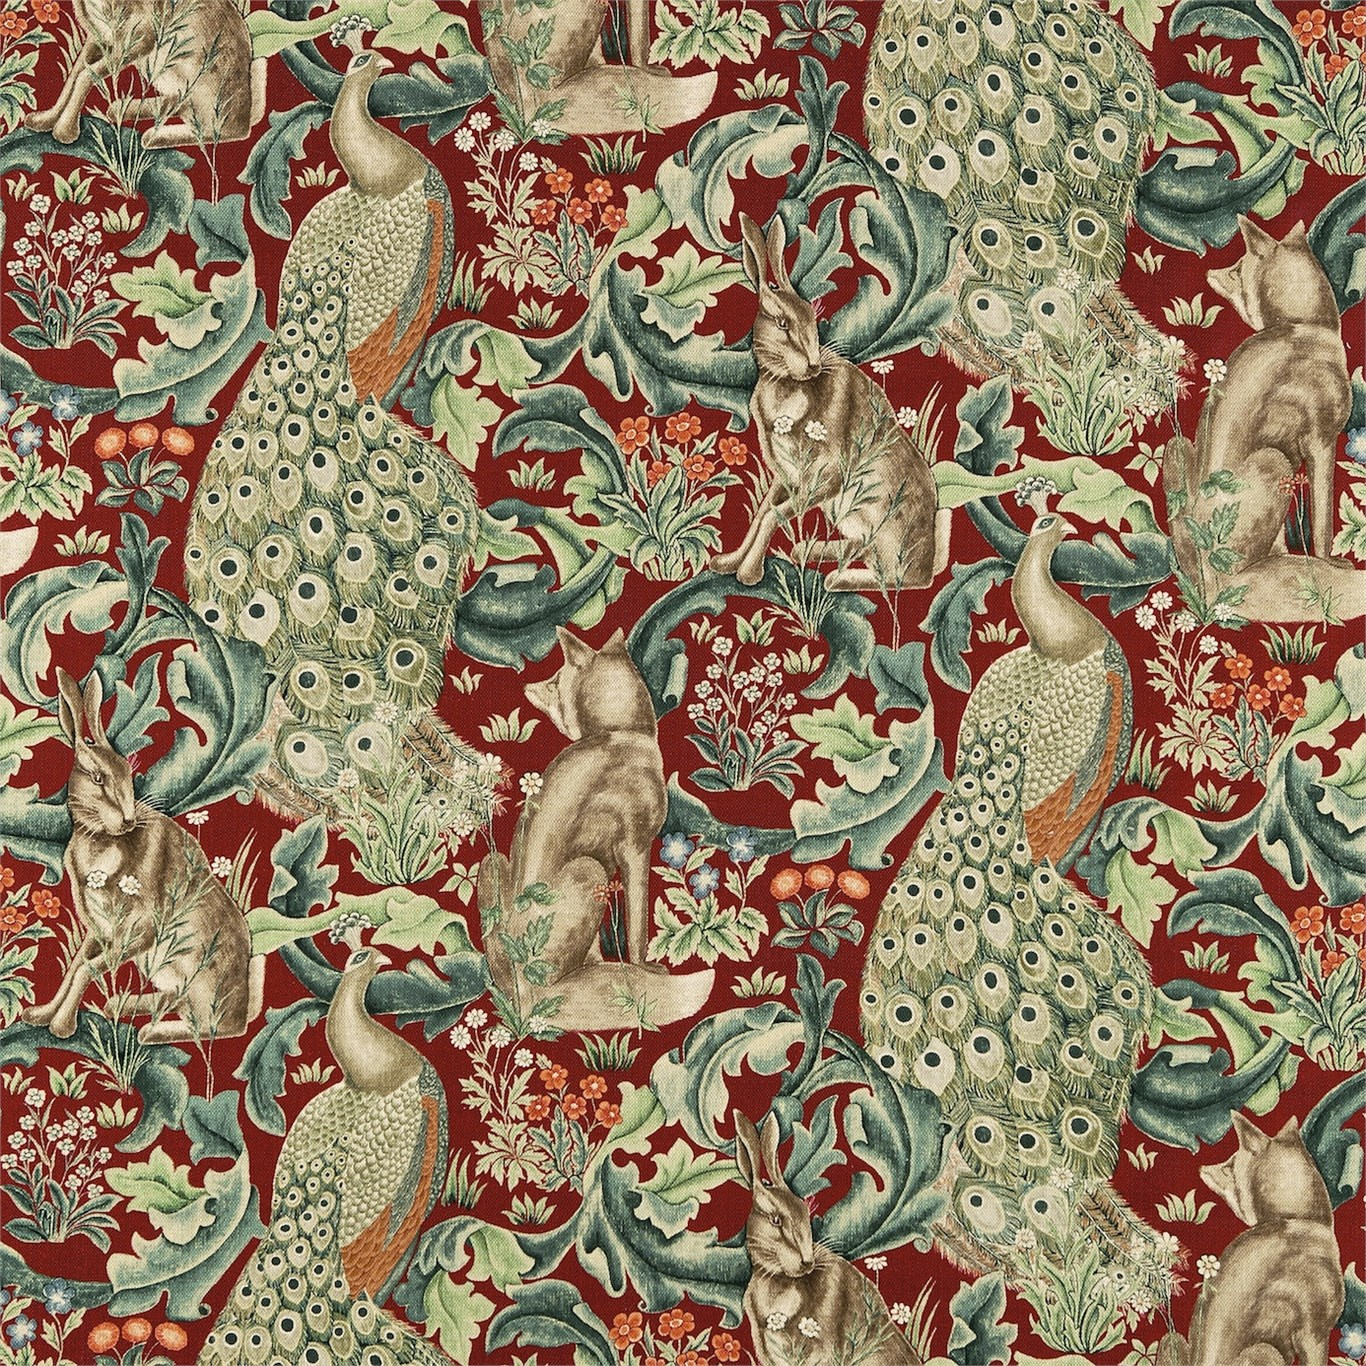 Free Download Original Morris Co Arts And Crafts Fabrics And Wallpaper Designs 1366x1366 For Your Desktop Mobile Tablet Explore 50 Craftsman Wallpaper Designs Craftsman Wallpaper Border Mission Style Wallpaper